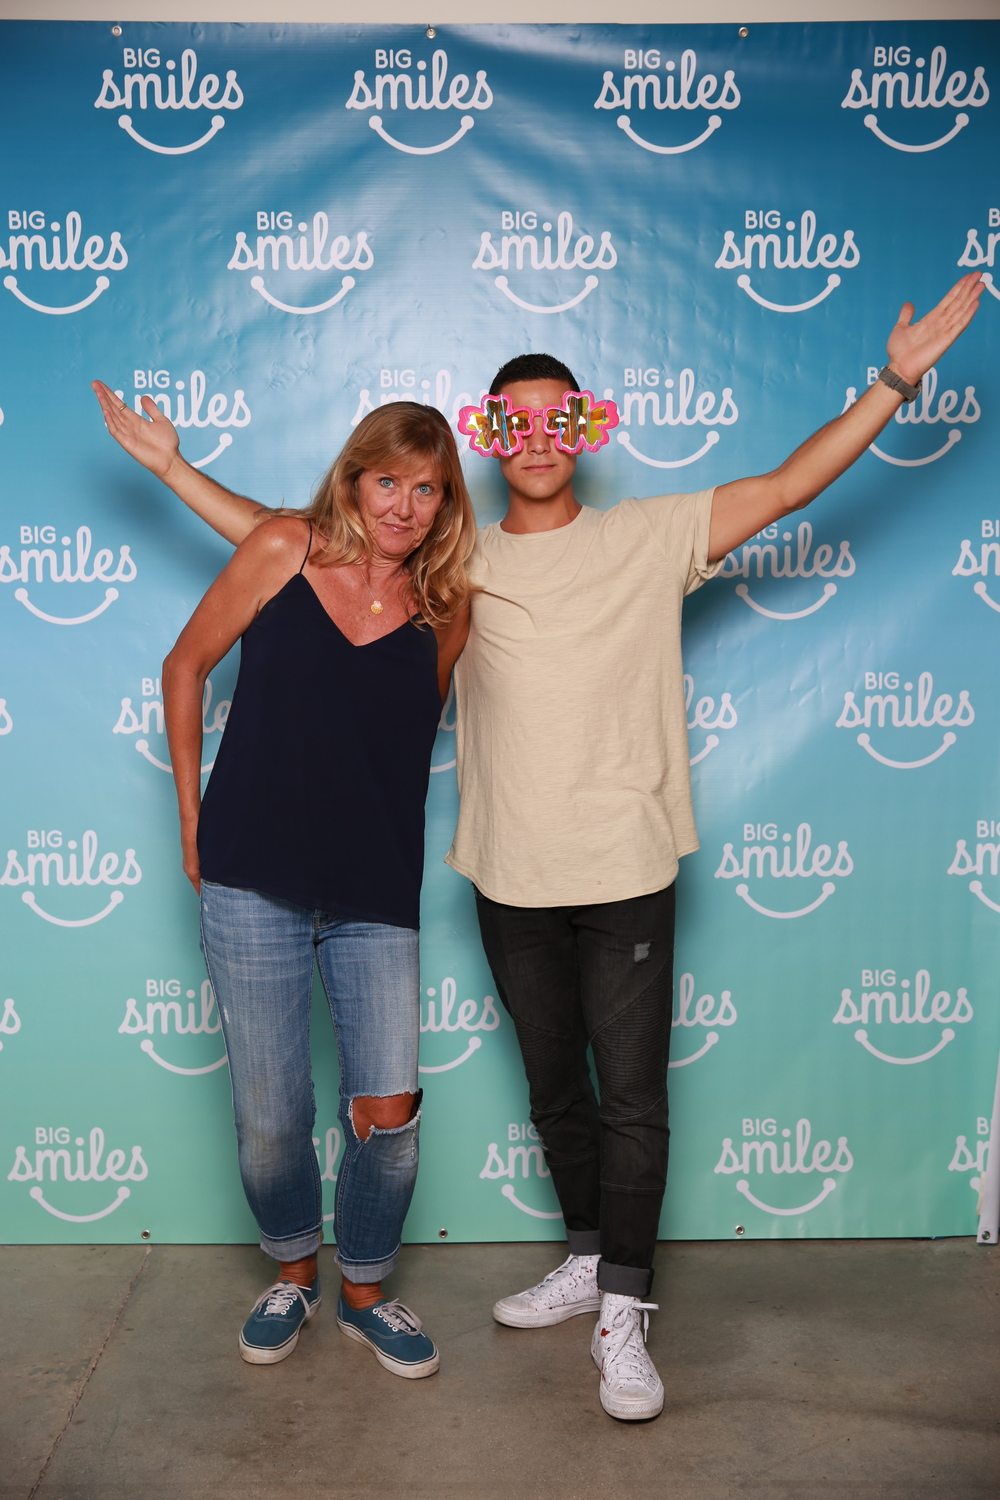 7.30.16 Big Smiles Program-083.JPG